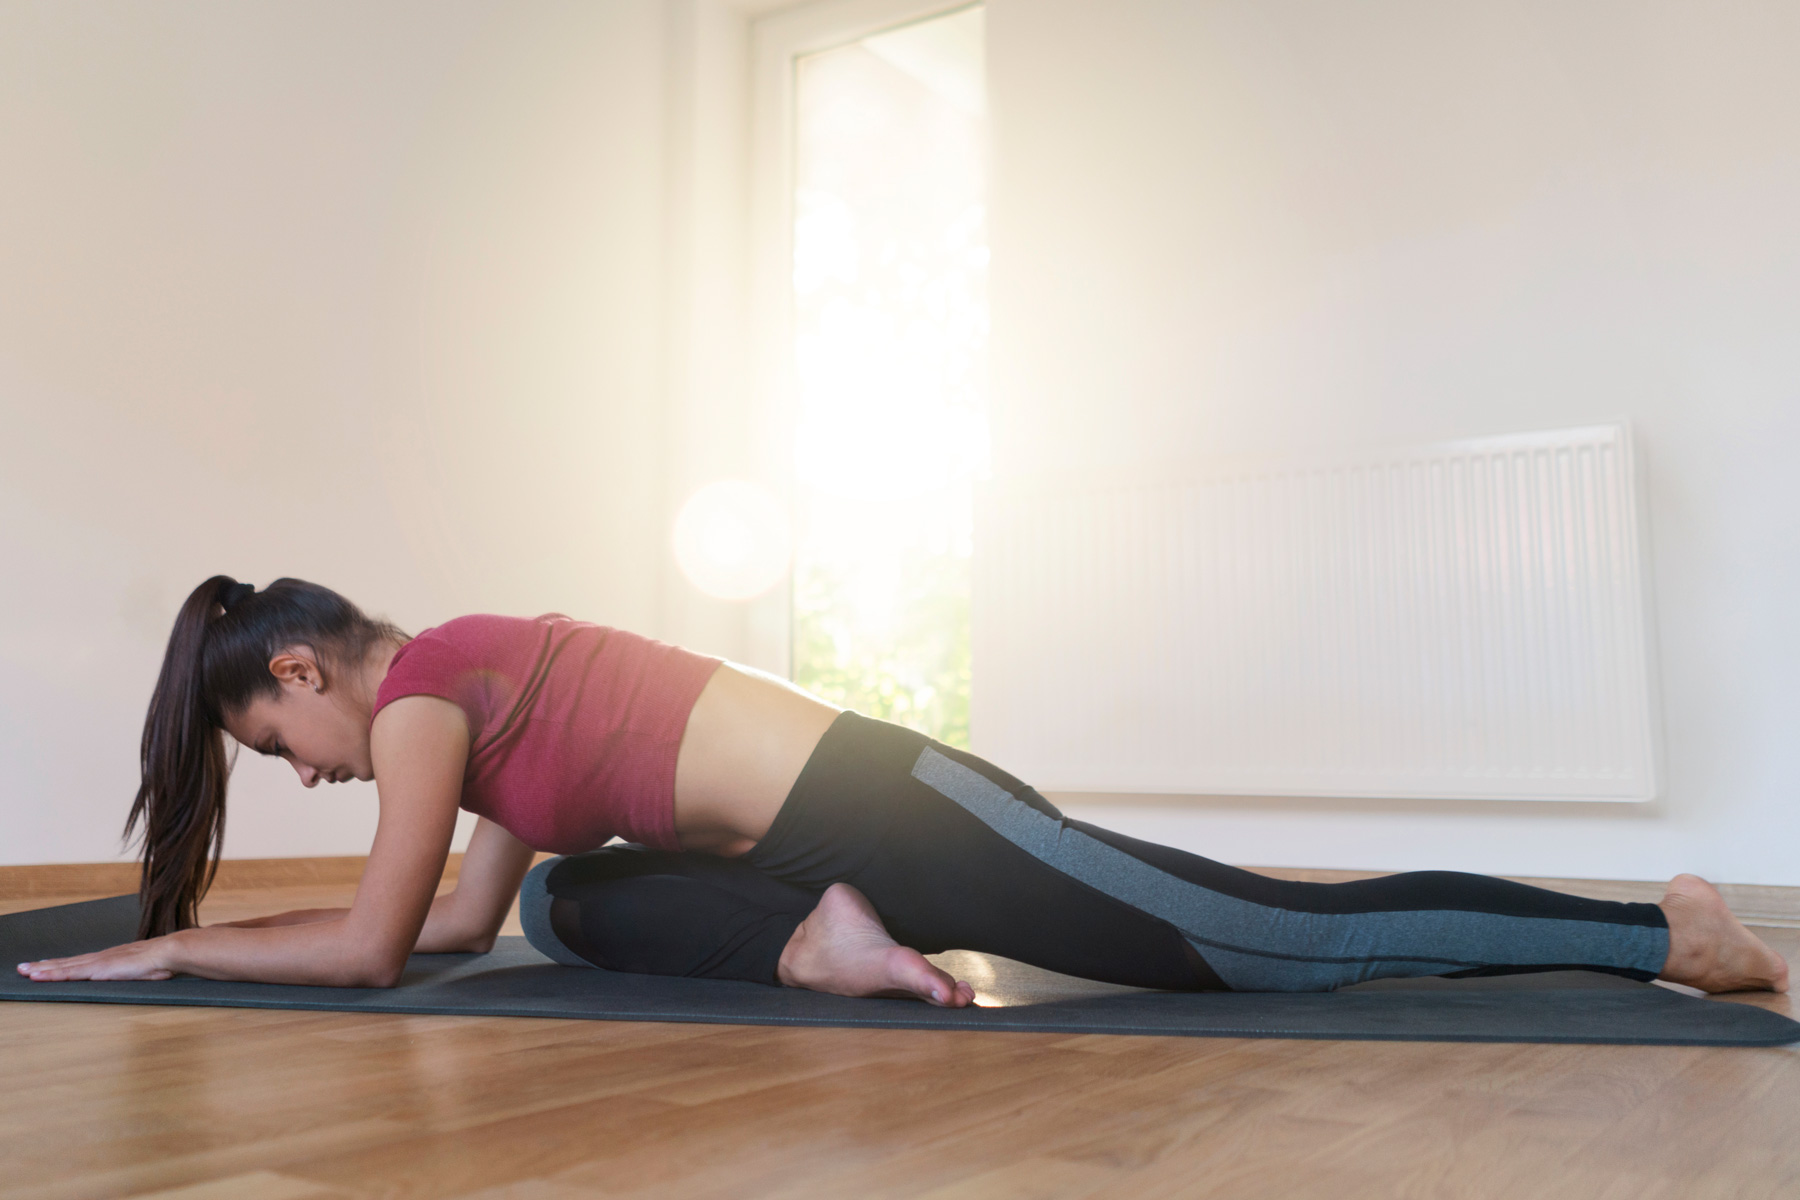 Yoga Poses to Relieve Muscle Tension: Sleeping one-leg pigeon pose hip stretch